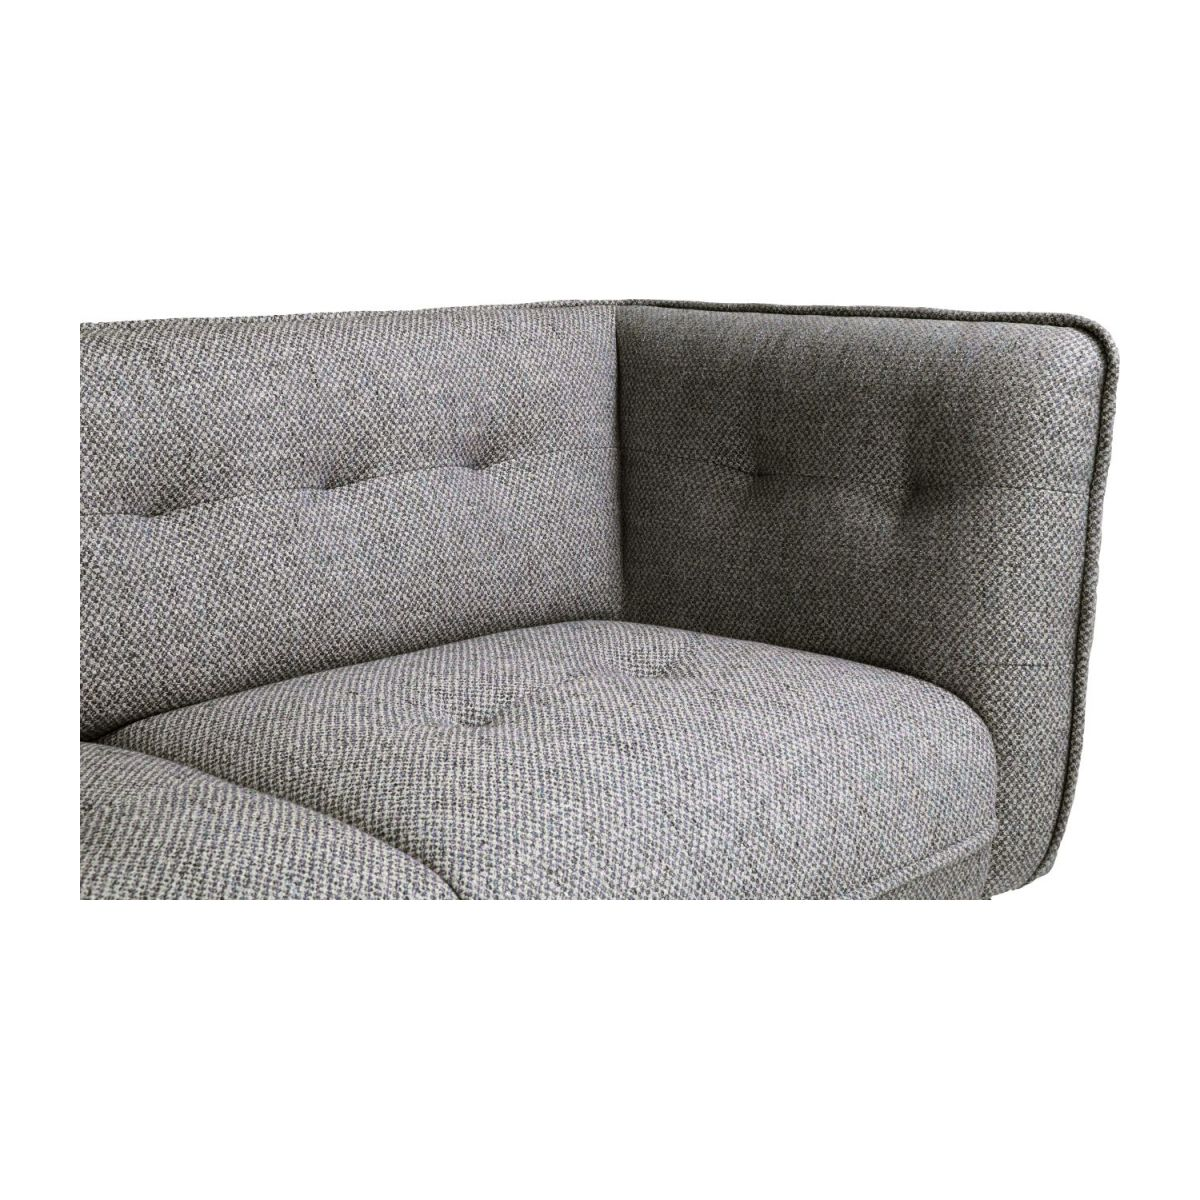 2 seater sofa in Bellagio fabric, night black and oak legs n°7